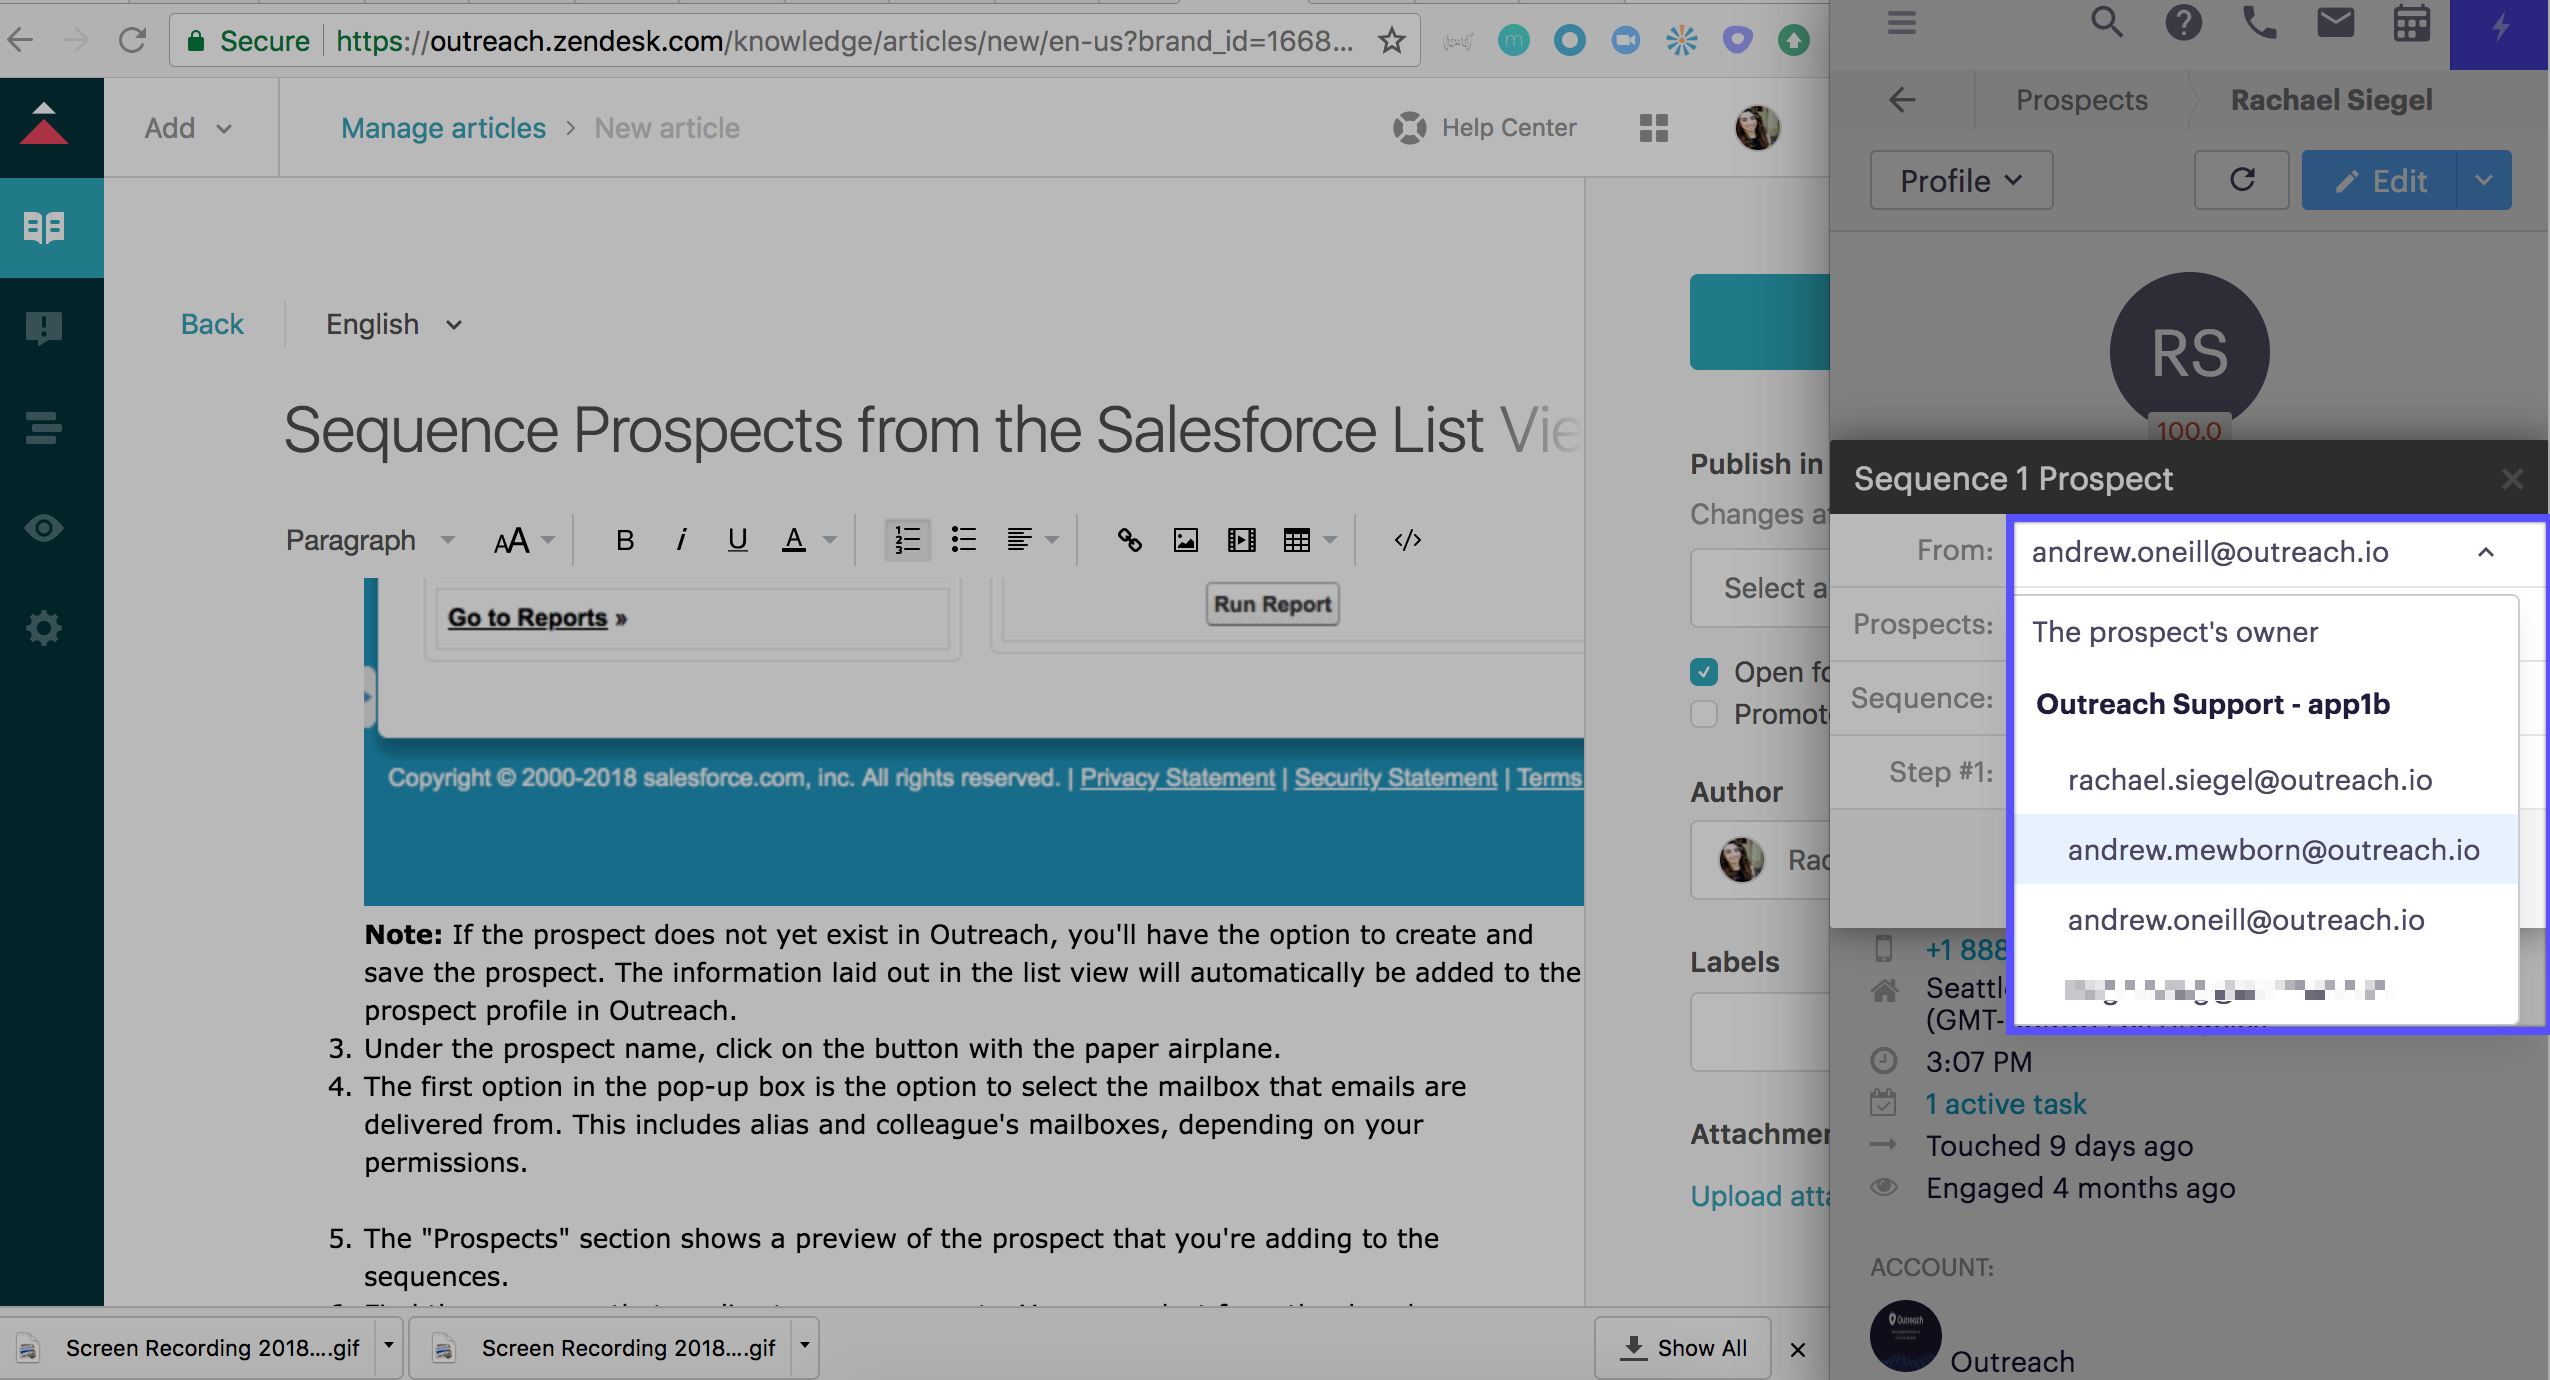 Sequence Prospects from the Salesforce List View – Outreach Support